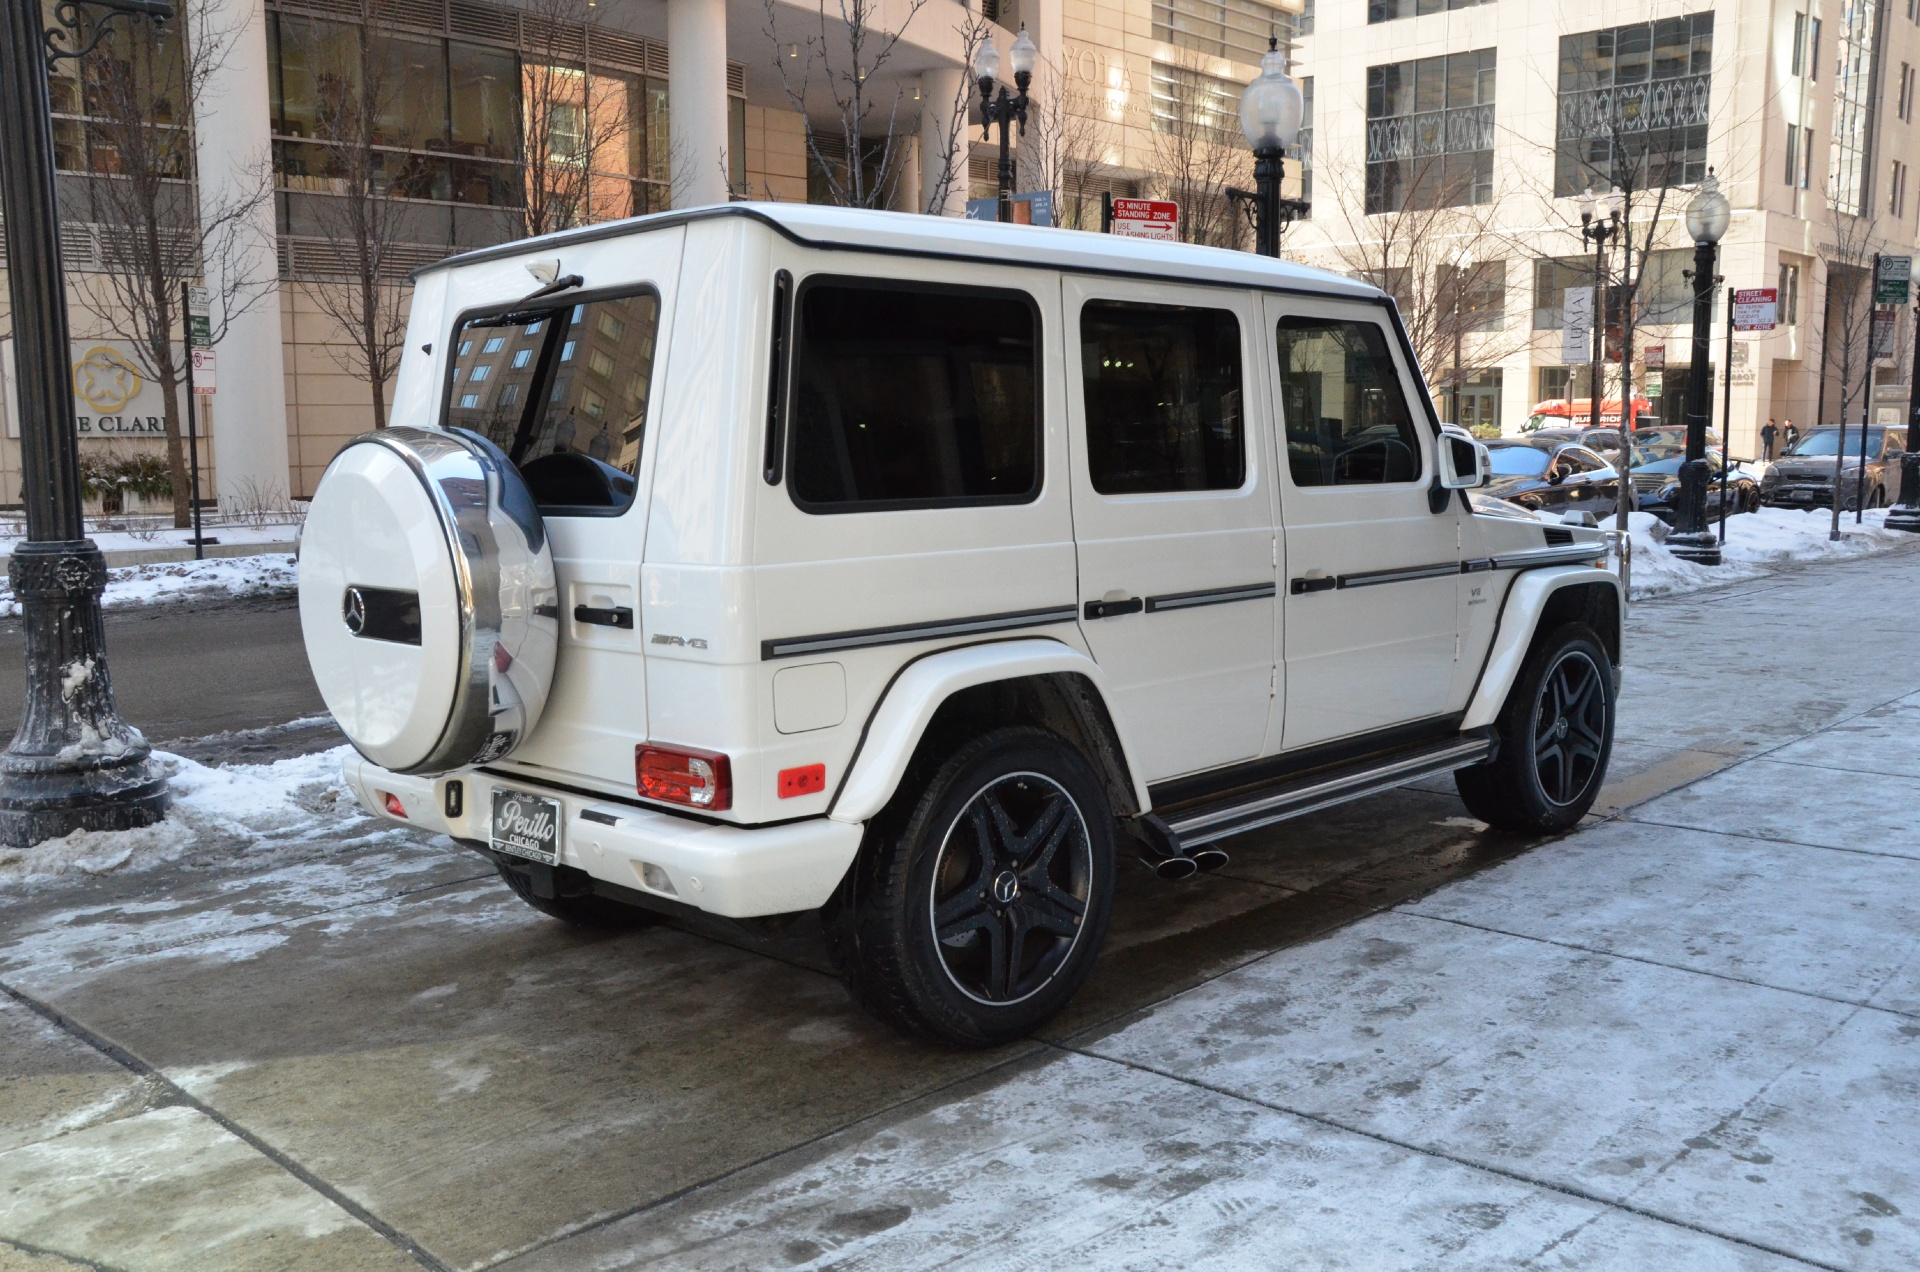 2014 mercedes benz g class g63 amg stock b678a for sale for Mercedes benz g63 amg for sale